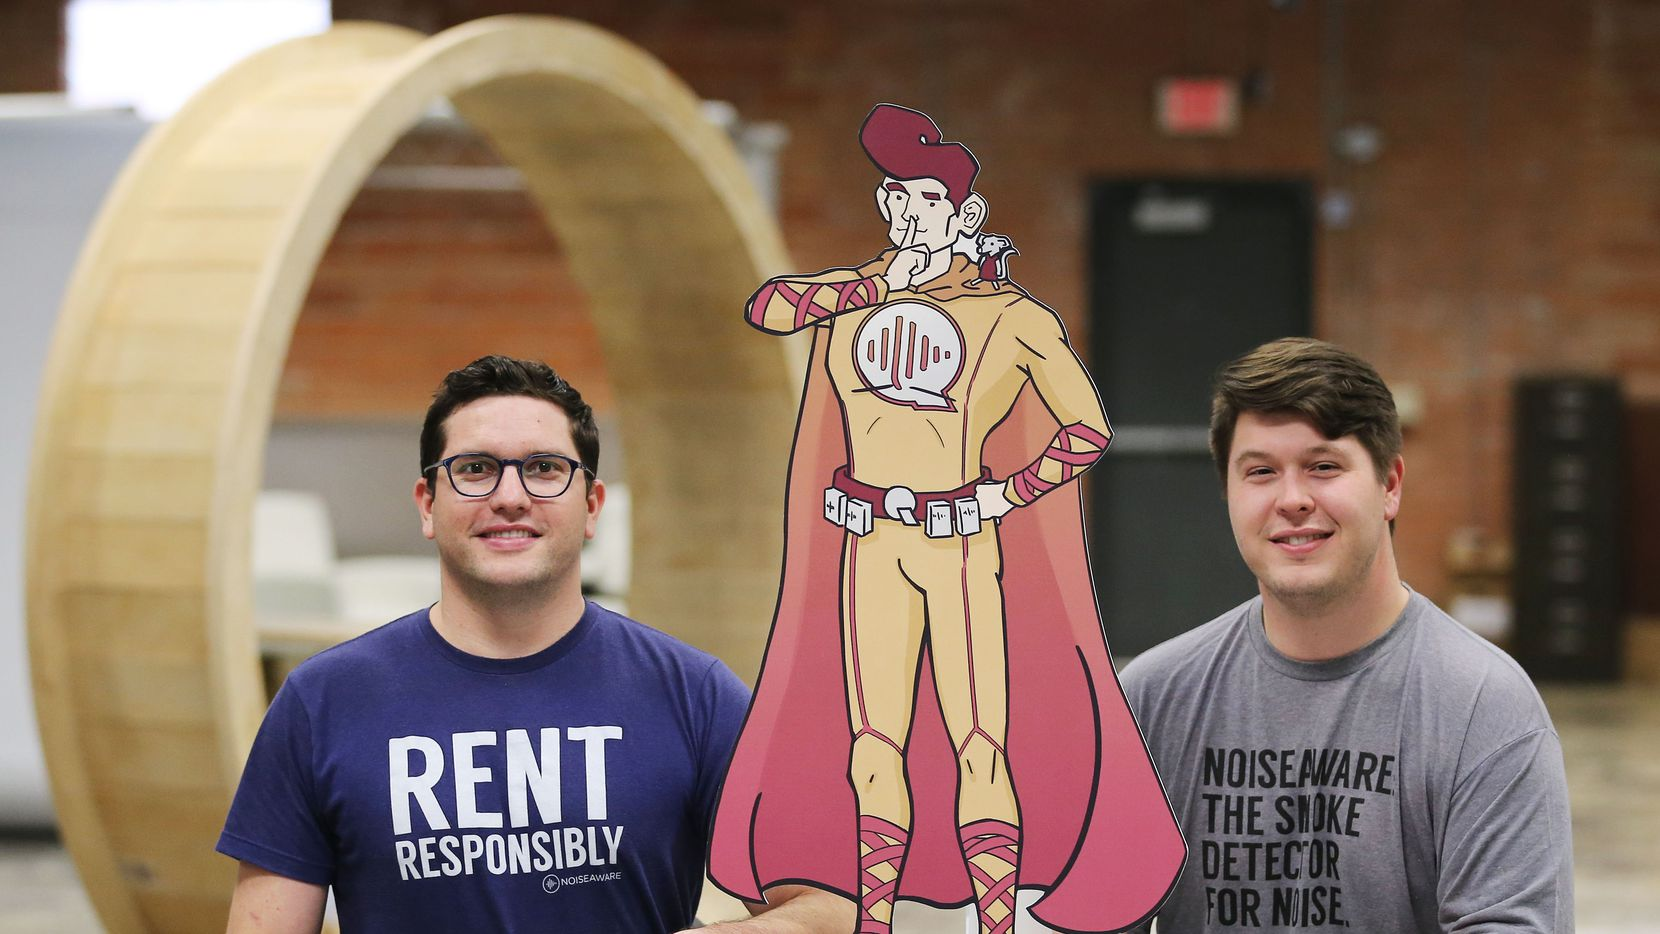 Dave Krauss (left) and Andrew Schulz, the co-founders of NoiseAware, helped to create a device to provide noise protection for short term and vacation rental properties. The co-founders were photographed with the company mascot, Quiet Man, in their Deep Ellum office in Dallas January 3, 2017. (Andy Jacobsohn/The Dallas Morning News)